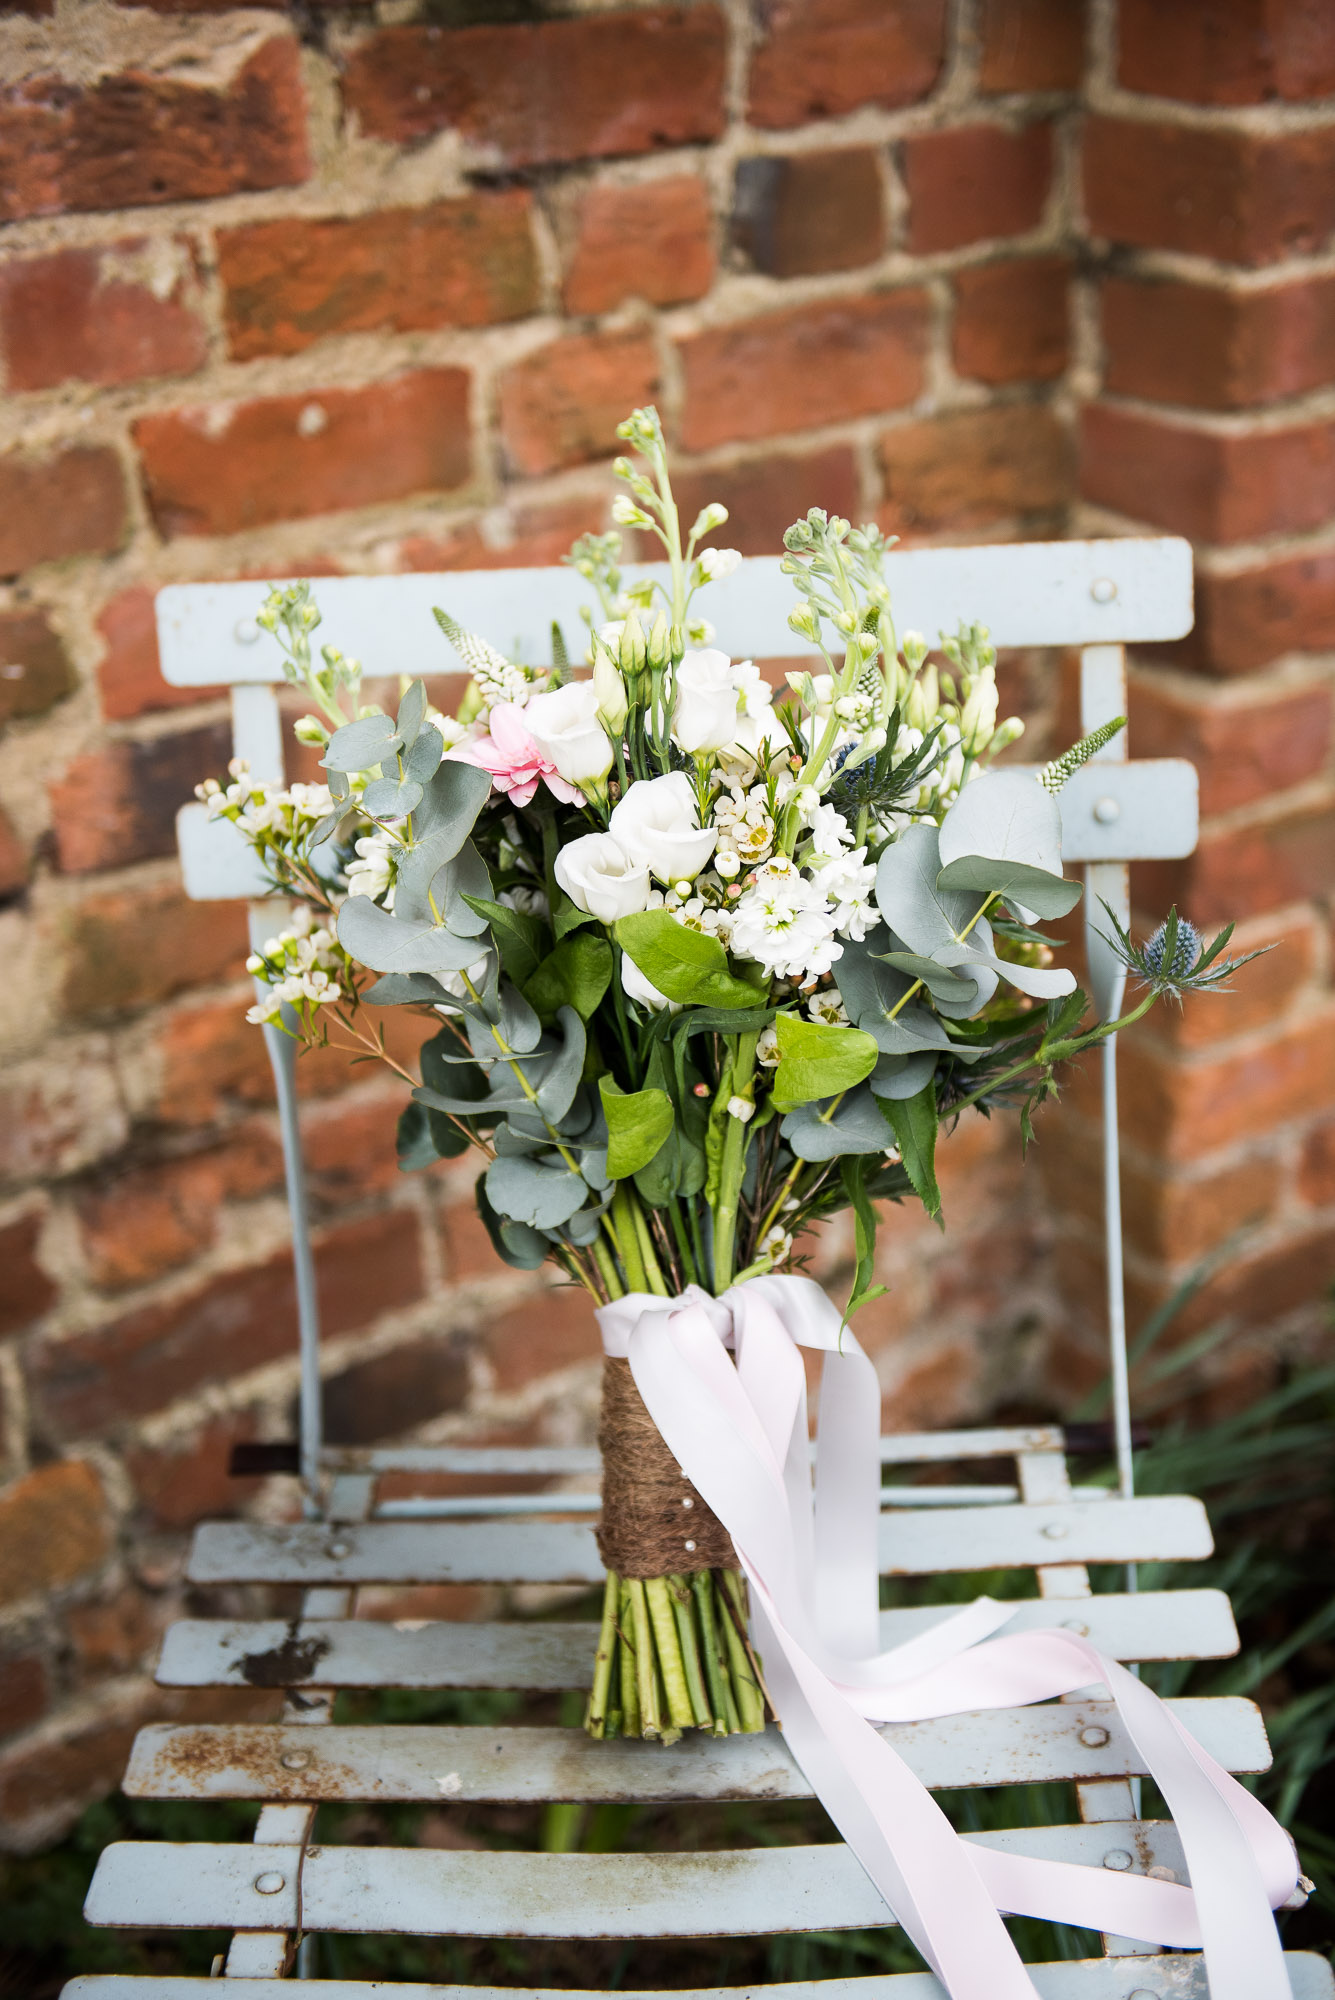 Bridal bouquet with eucalyptus and white flowers